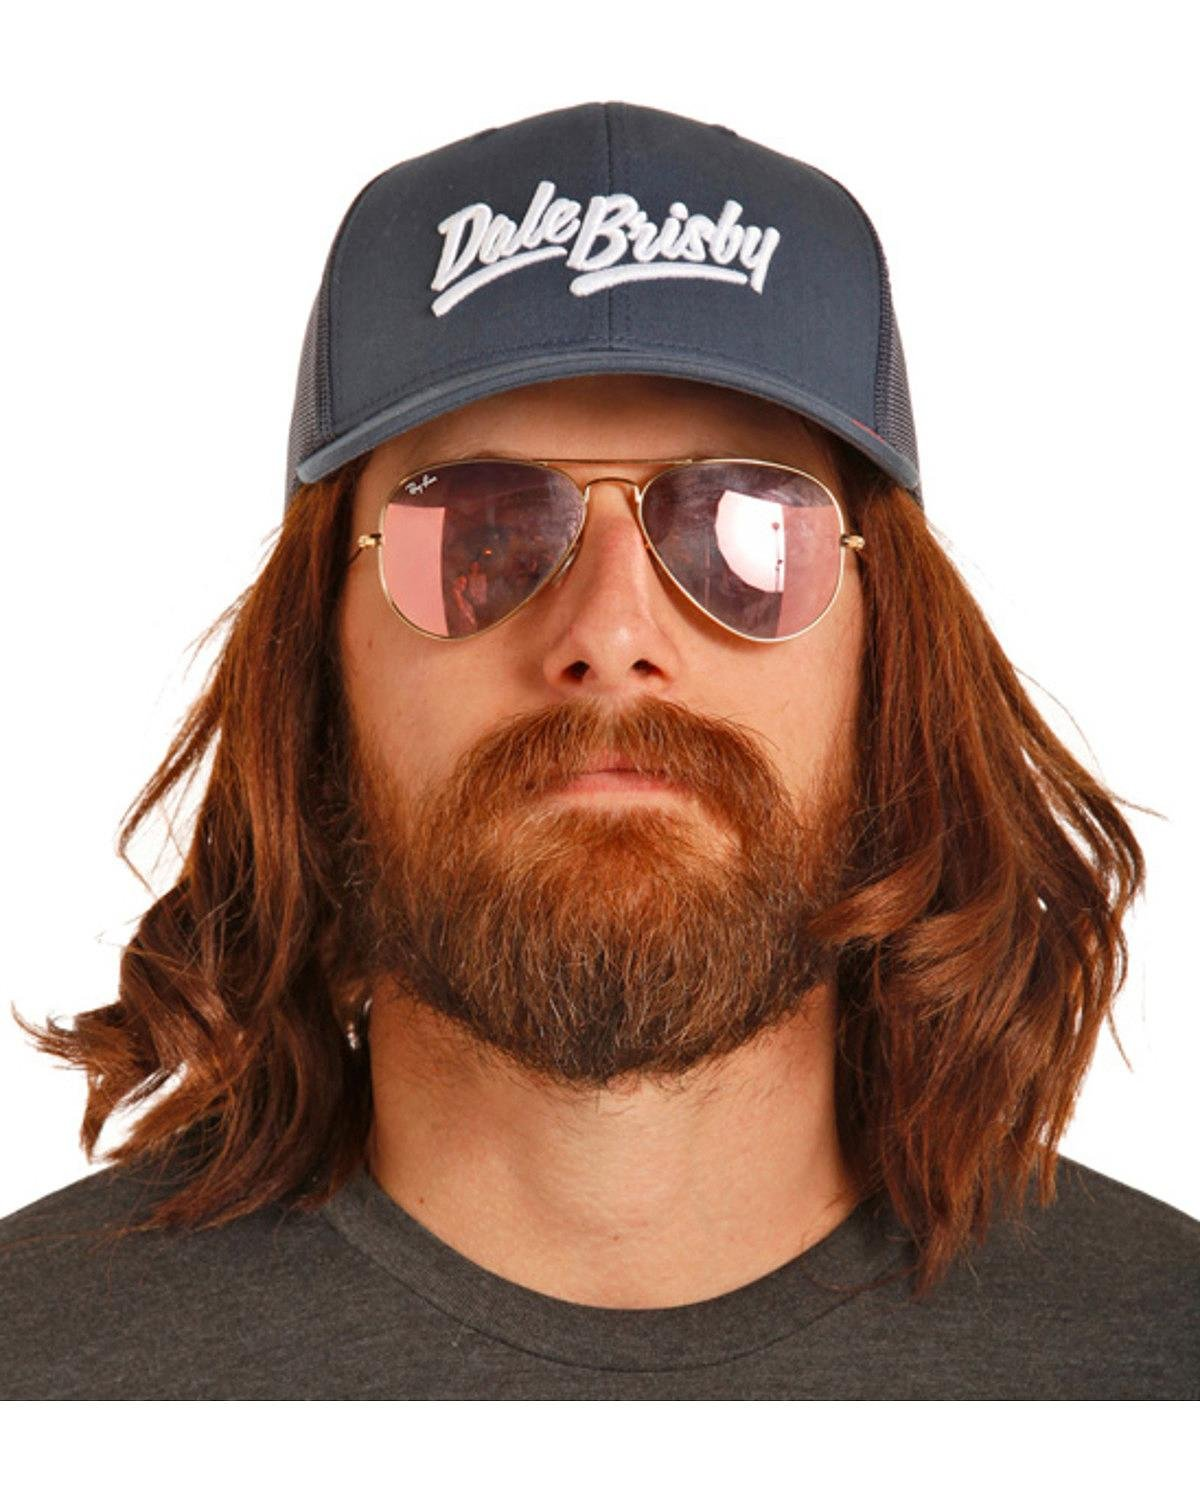 Rock & Roll Cowboy Men's And Dale Brisby Navy Mesh Back Trucker Cap Navy One Size